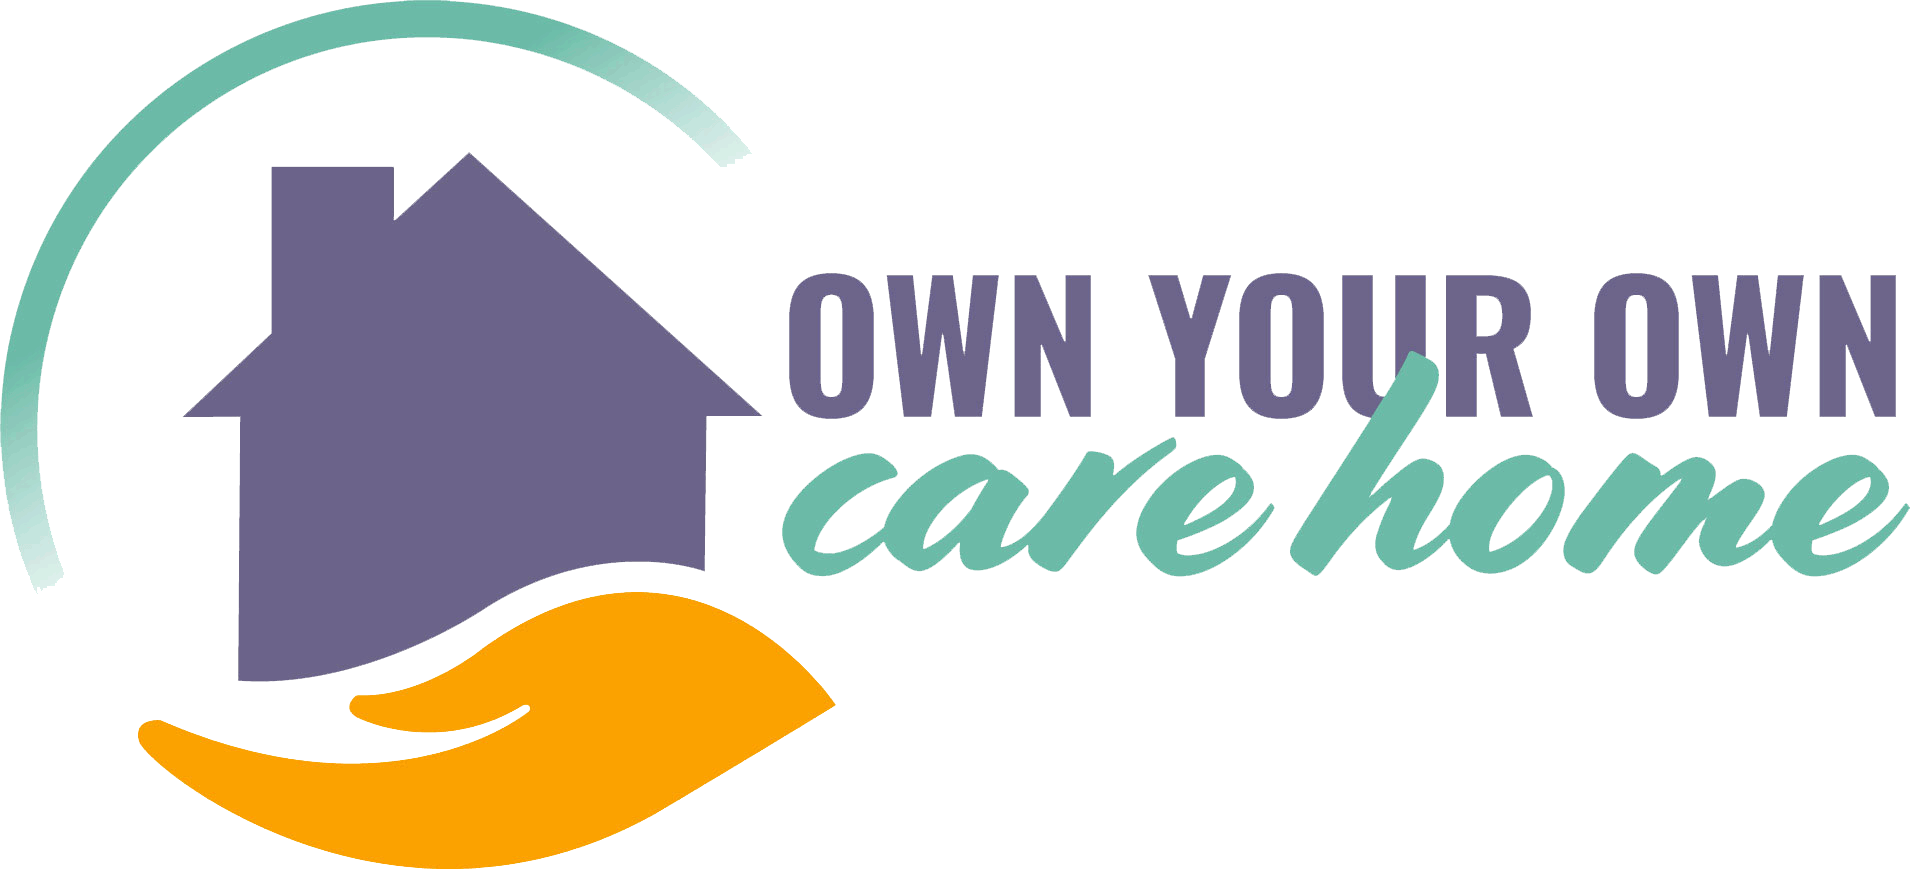 Own Your Own Care Home